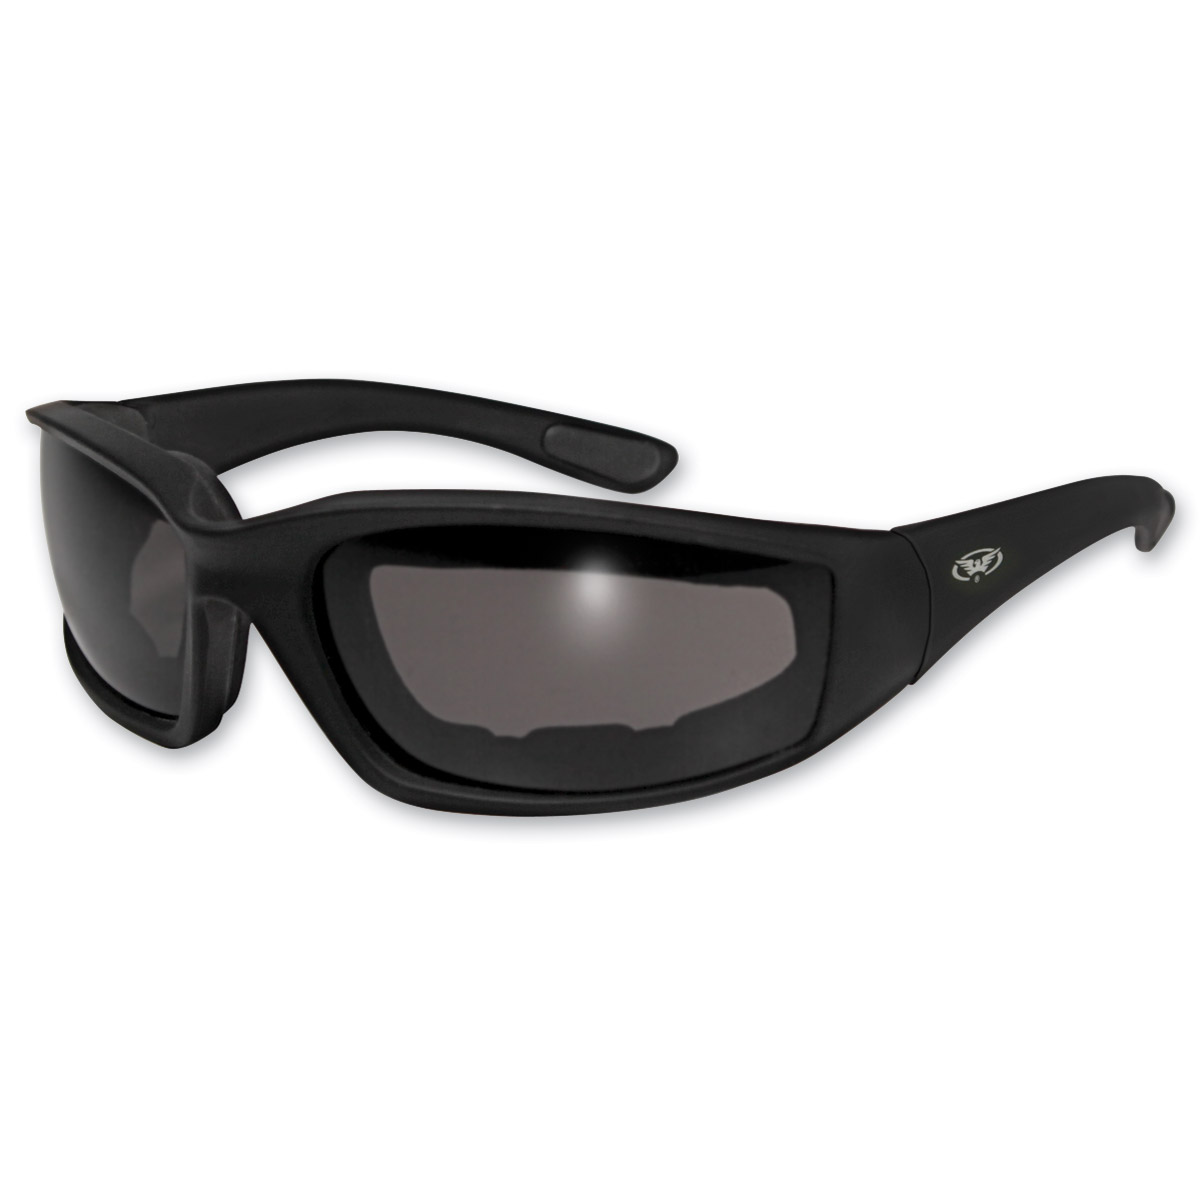 Global Vision Eyewear Kickback Padded Sunglasses with Smoke Lens